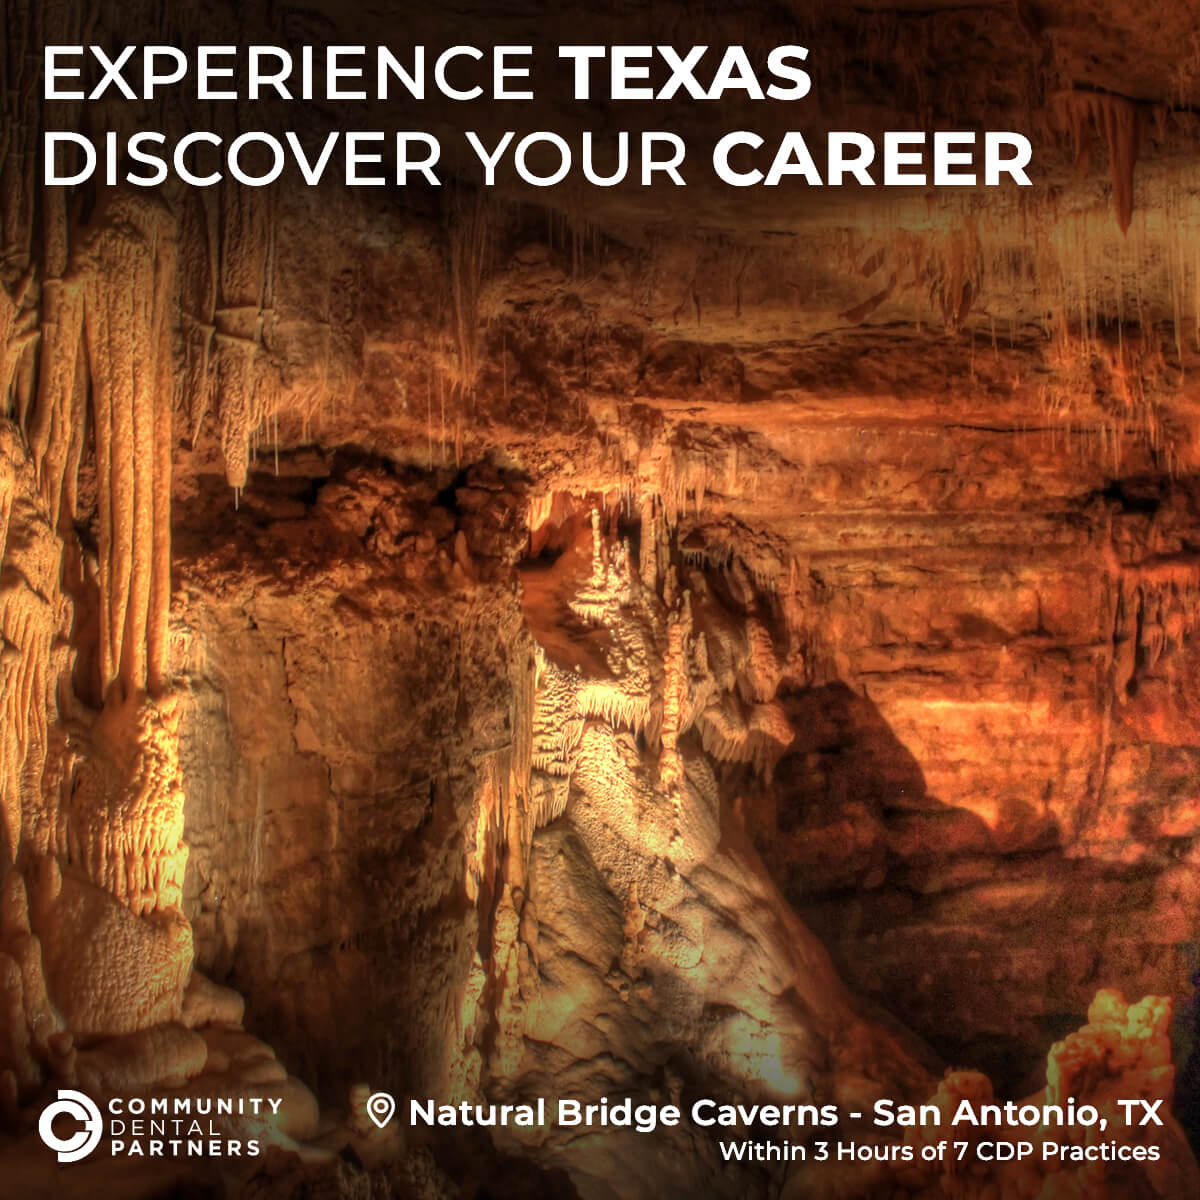 A photo of the Natural Bridge Caverns in San Antonio, Texas, located within 3 hours of 7 CDP practices!